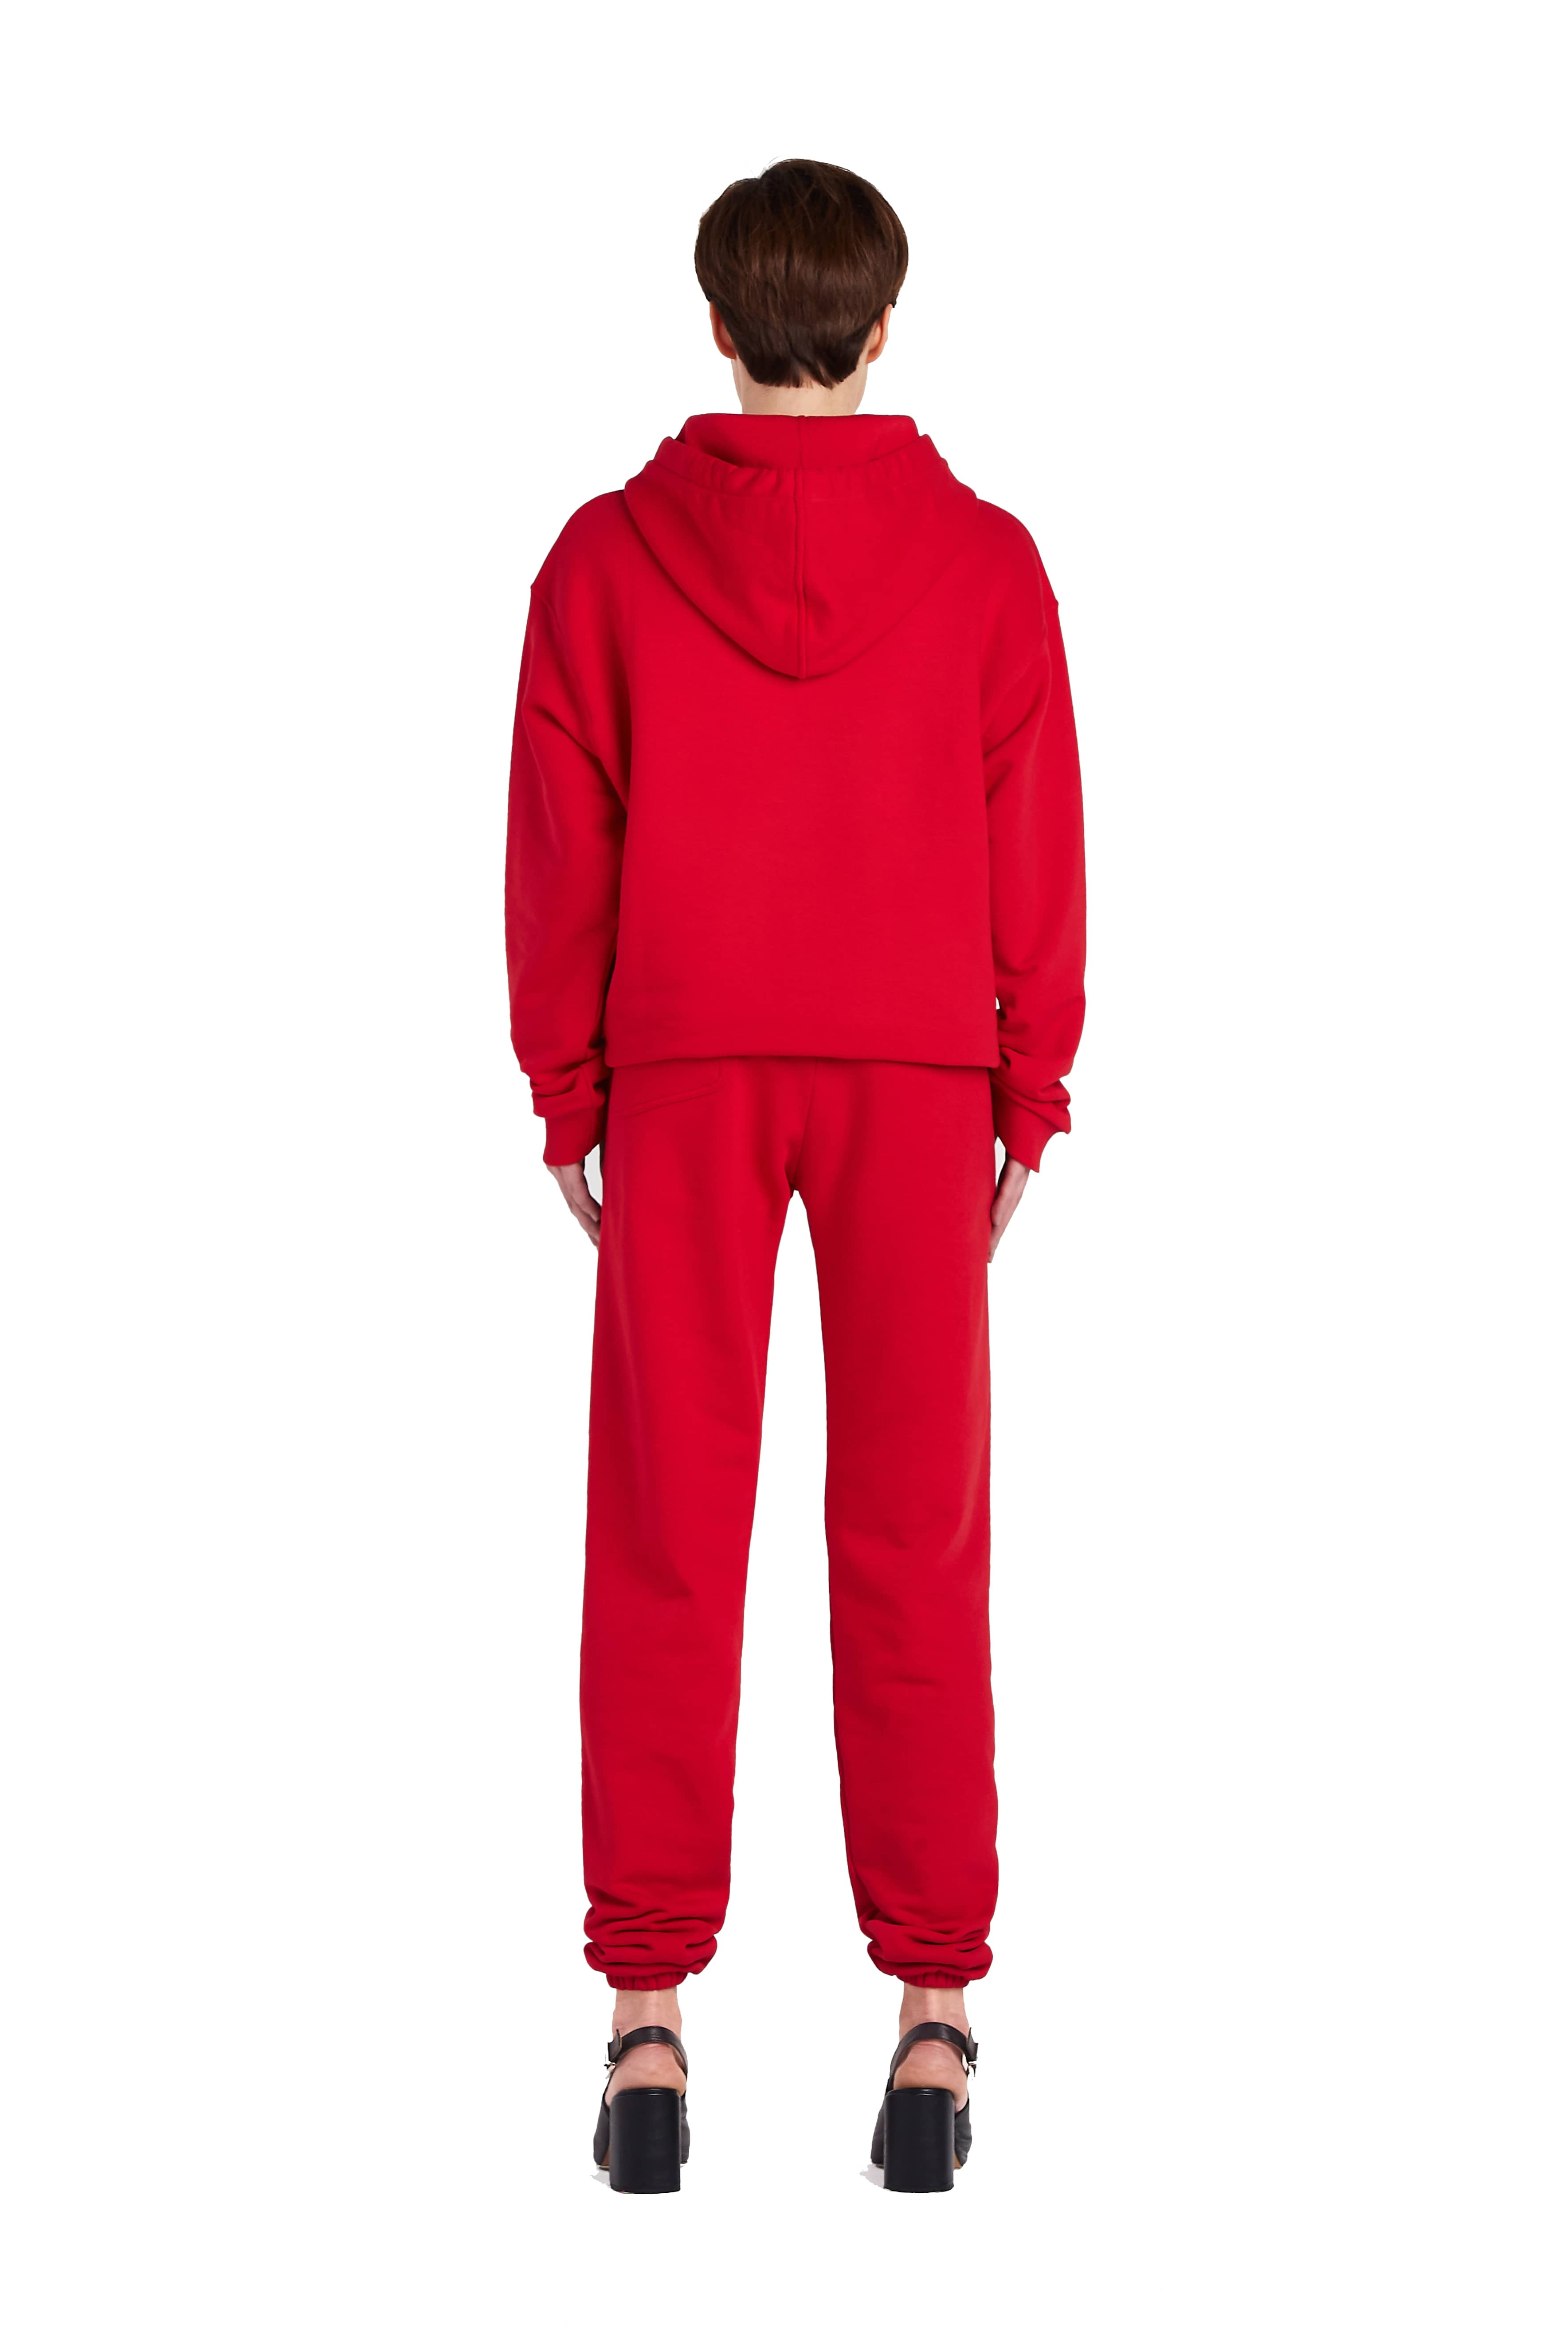 Red sweatpants TECHNOMOTHER